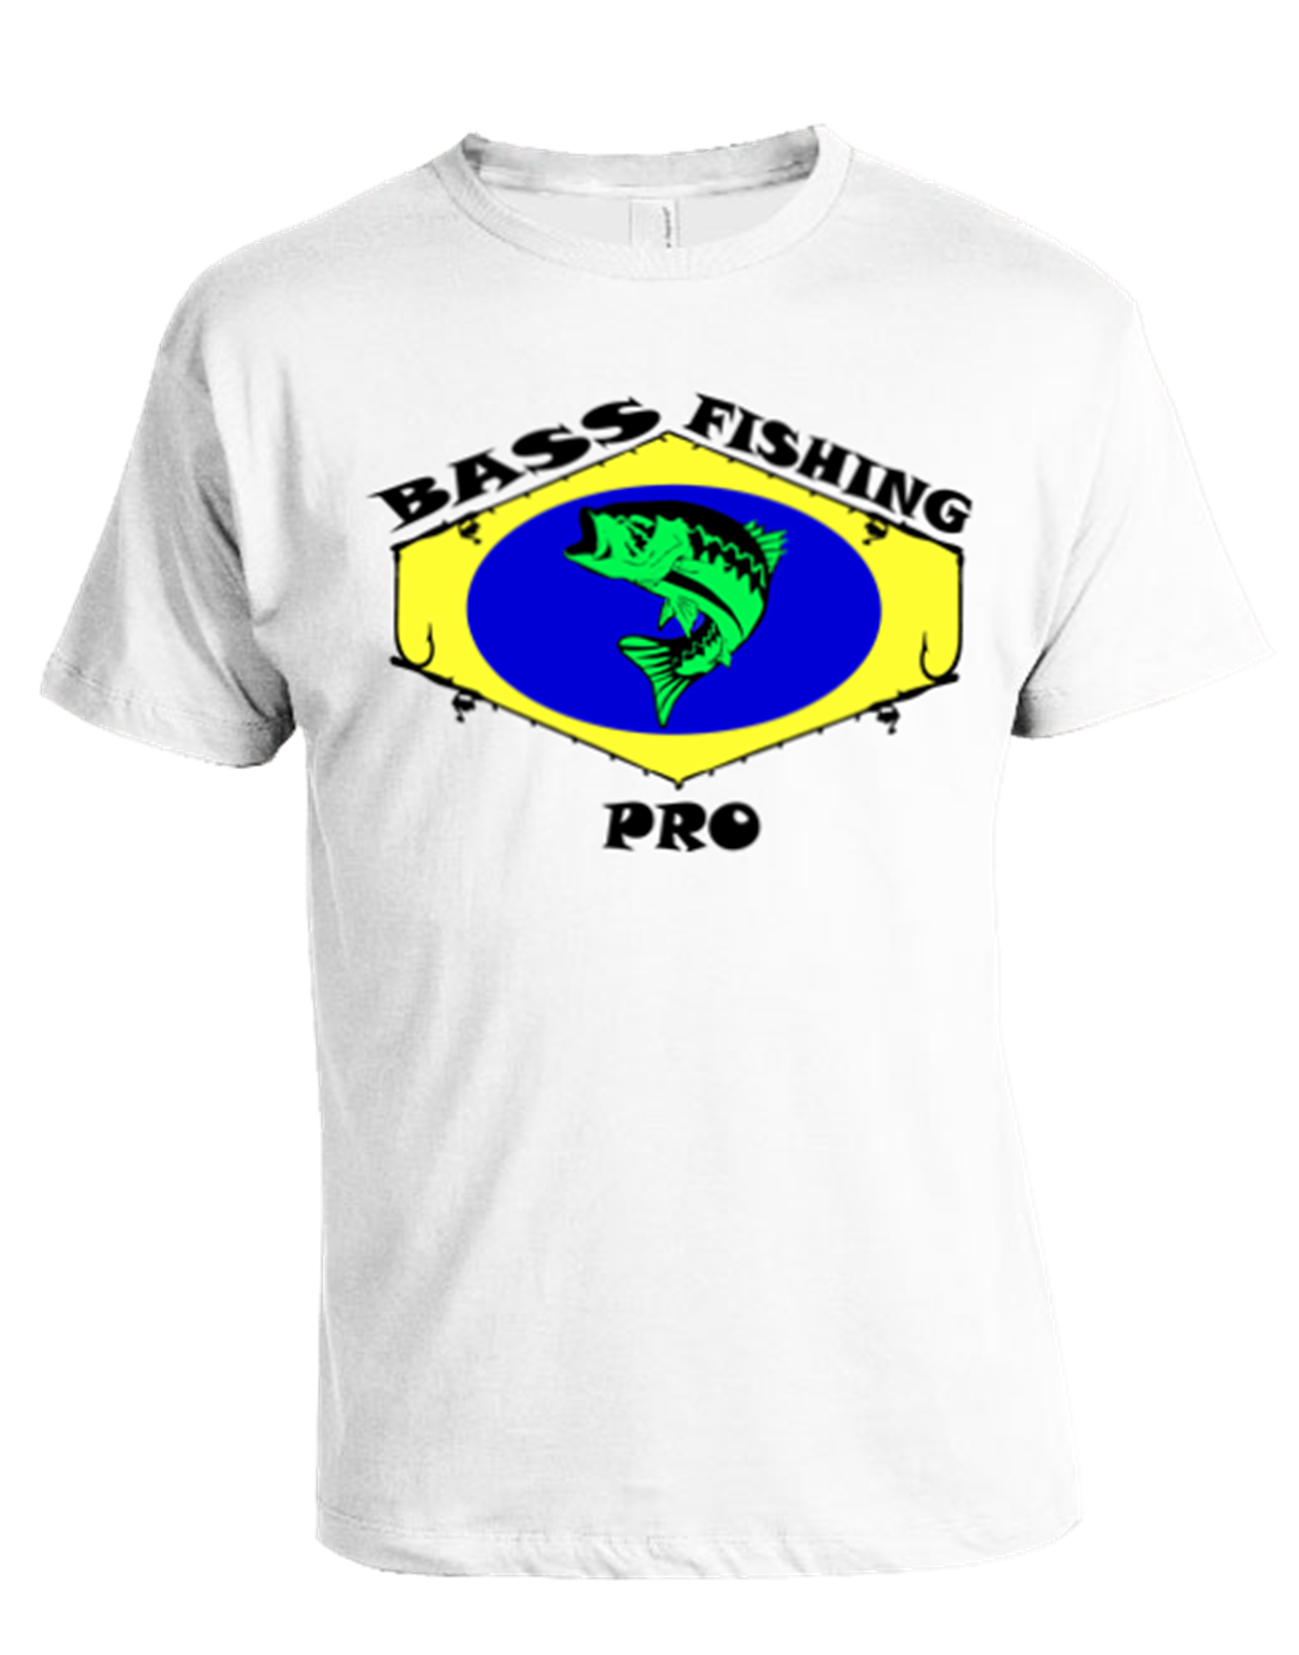 Bass fishing pro t shirt white for Bass fishing shirt